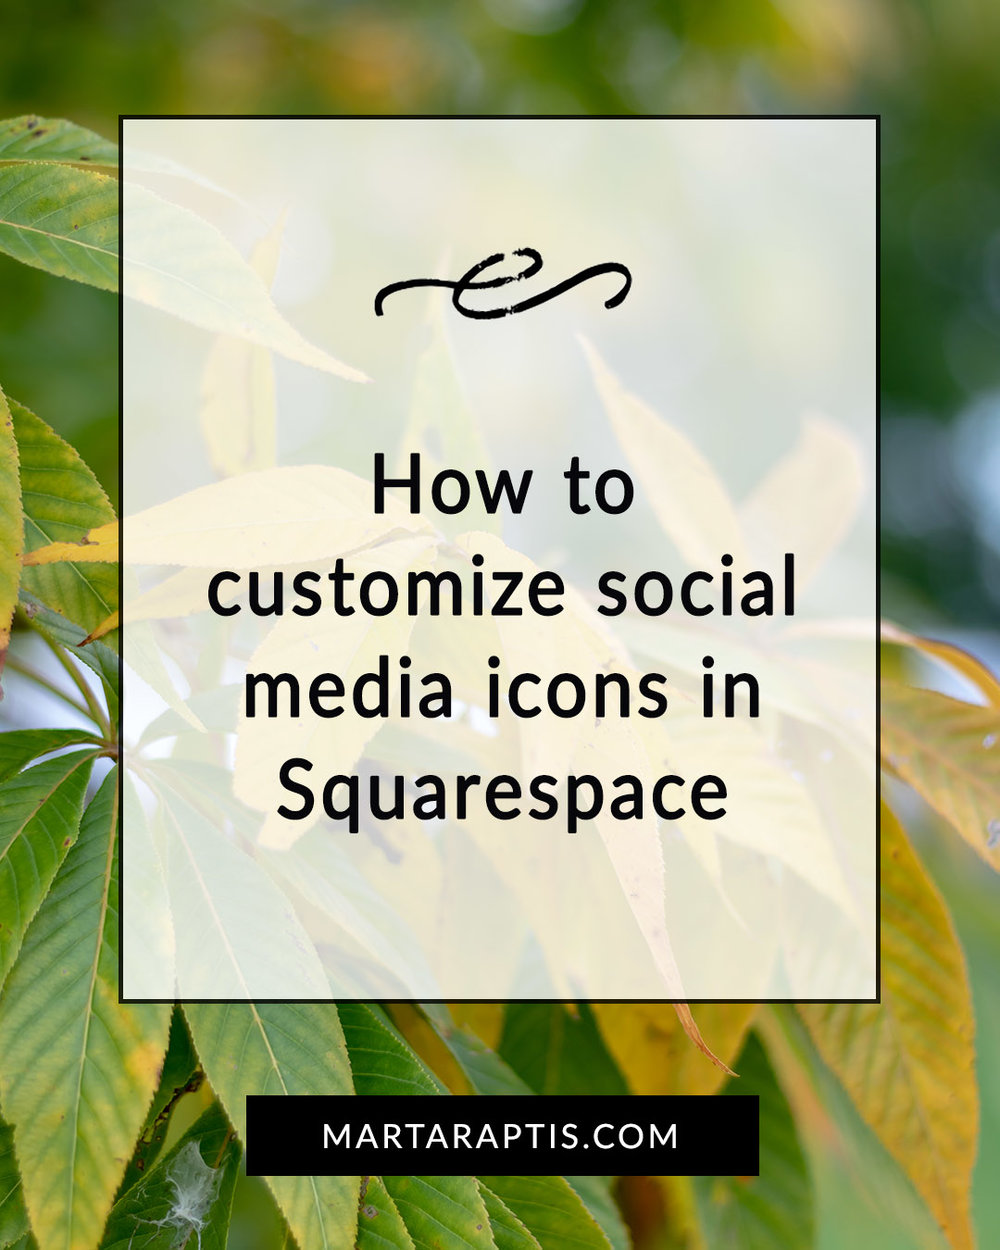 How to customize social media icons in Squarespace .jpg